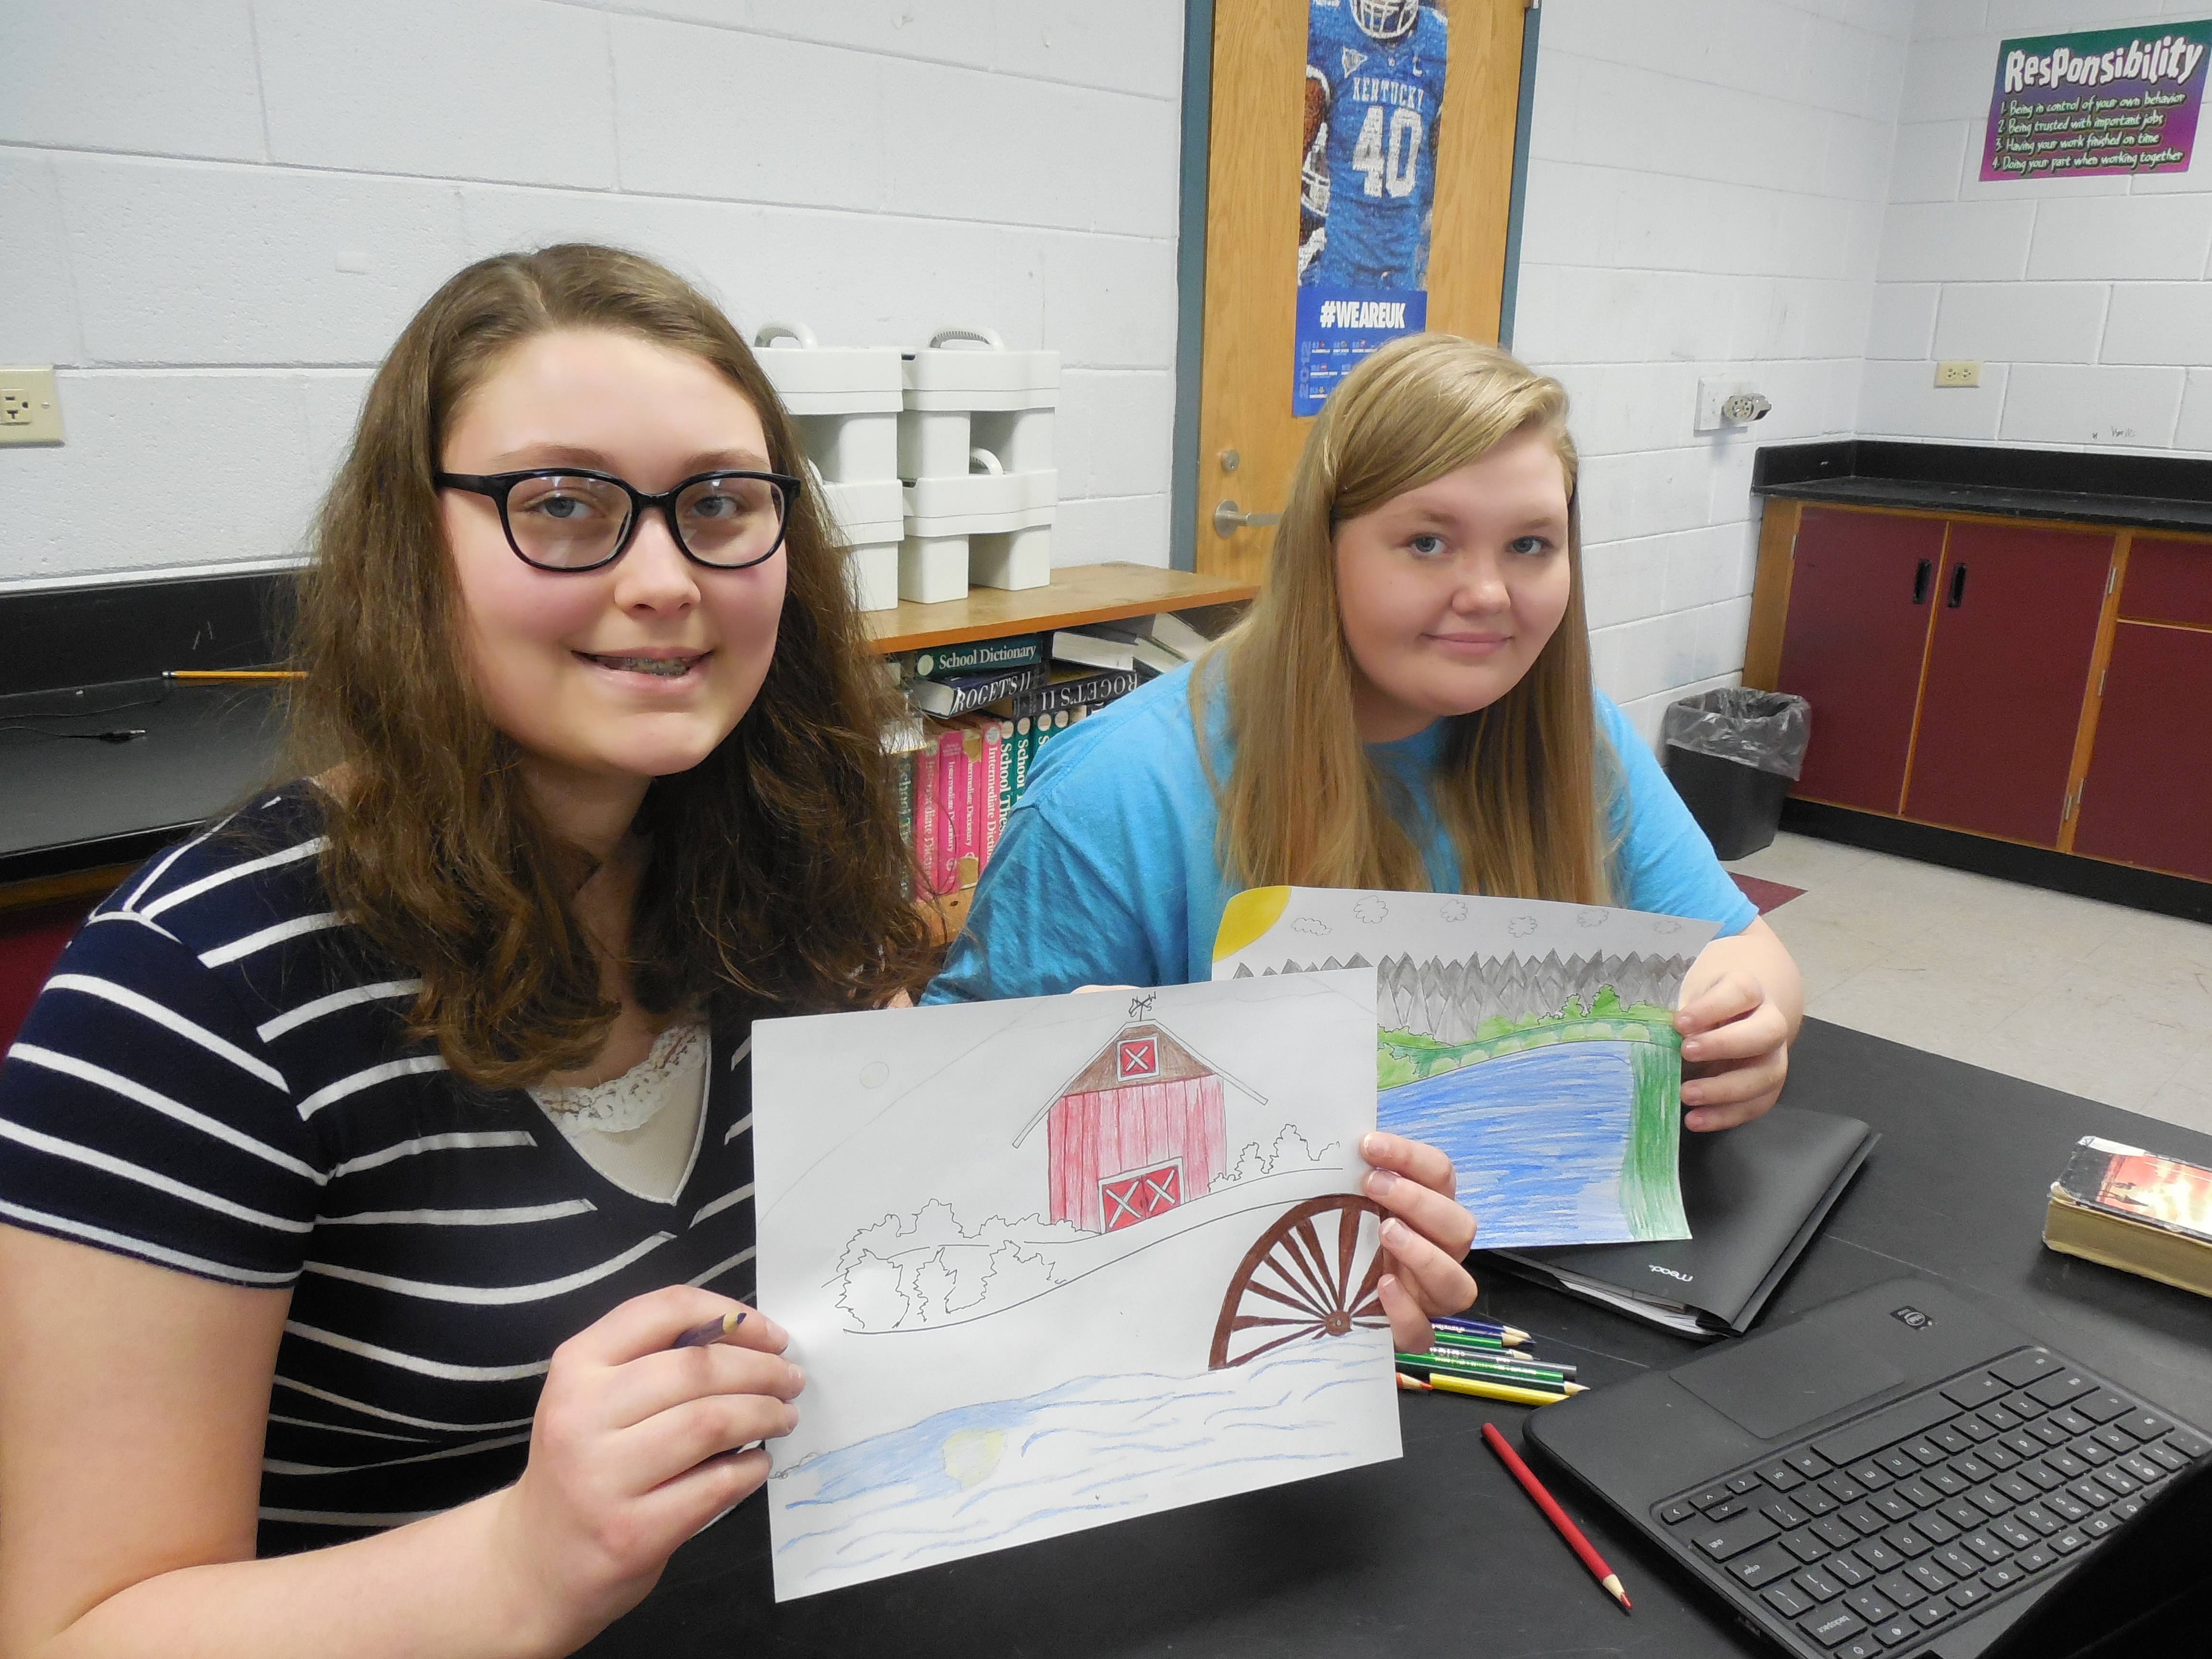 Clinton County Middle School was awarded a Showcasing the Arts grant from the Kentucky Arts Council.